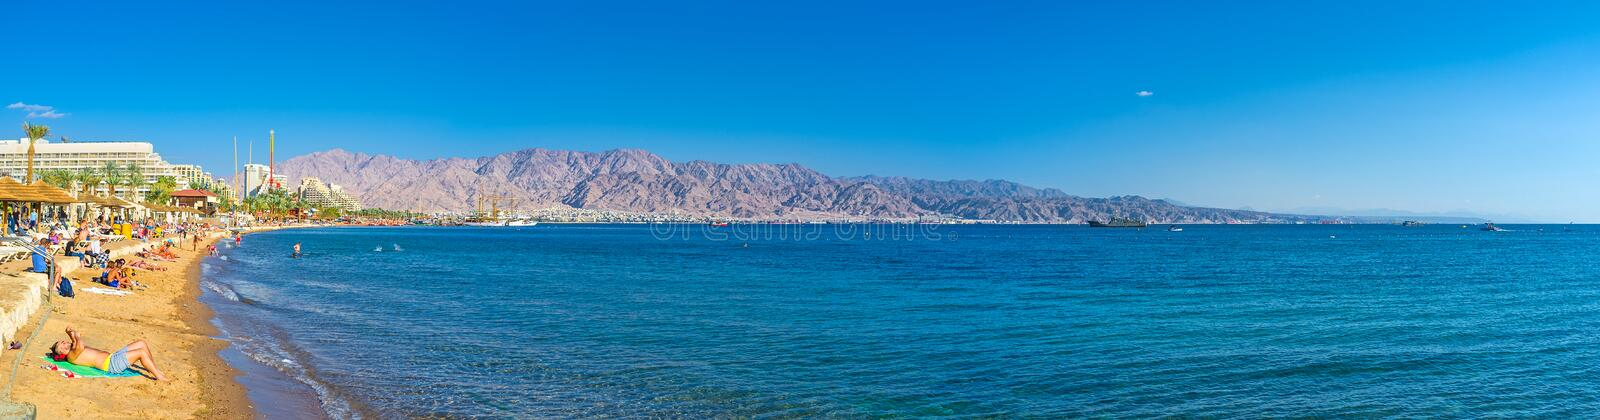 Panorama of the coast of Eilat. EILAT, ISRAEL - FEBRUARY 23, 2016: The scenic coastline with the comfortable sand beach and picturesque rocky mountains of Aqaba royalty free stock photography